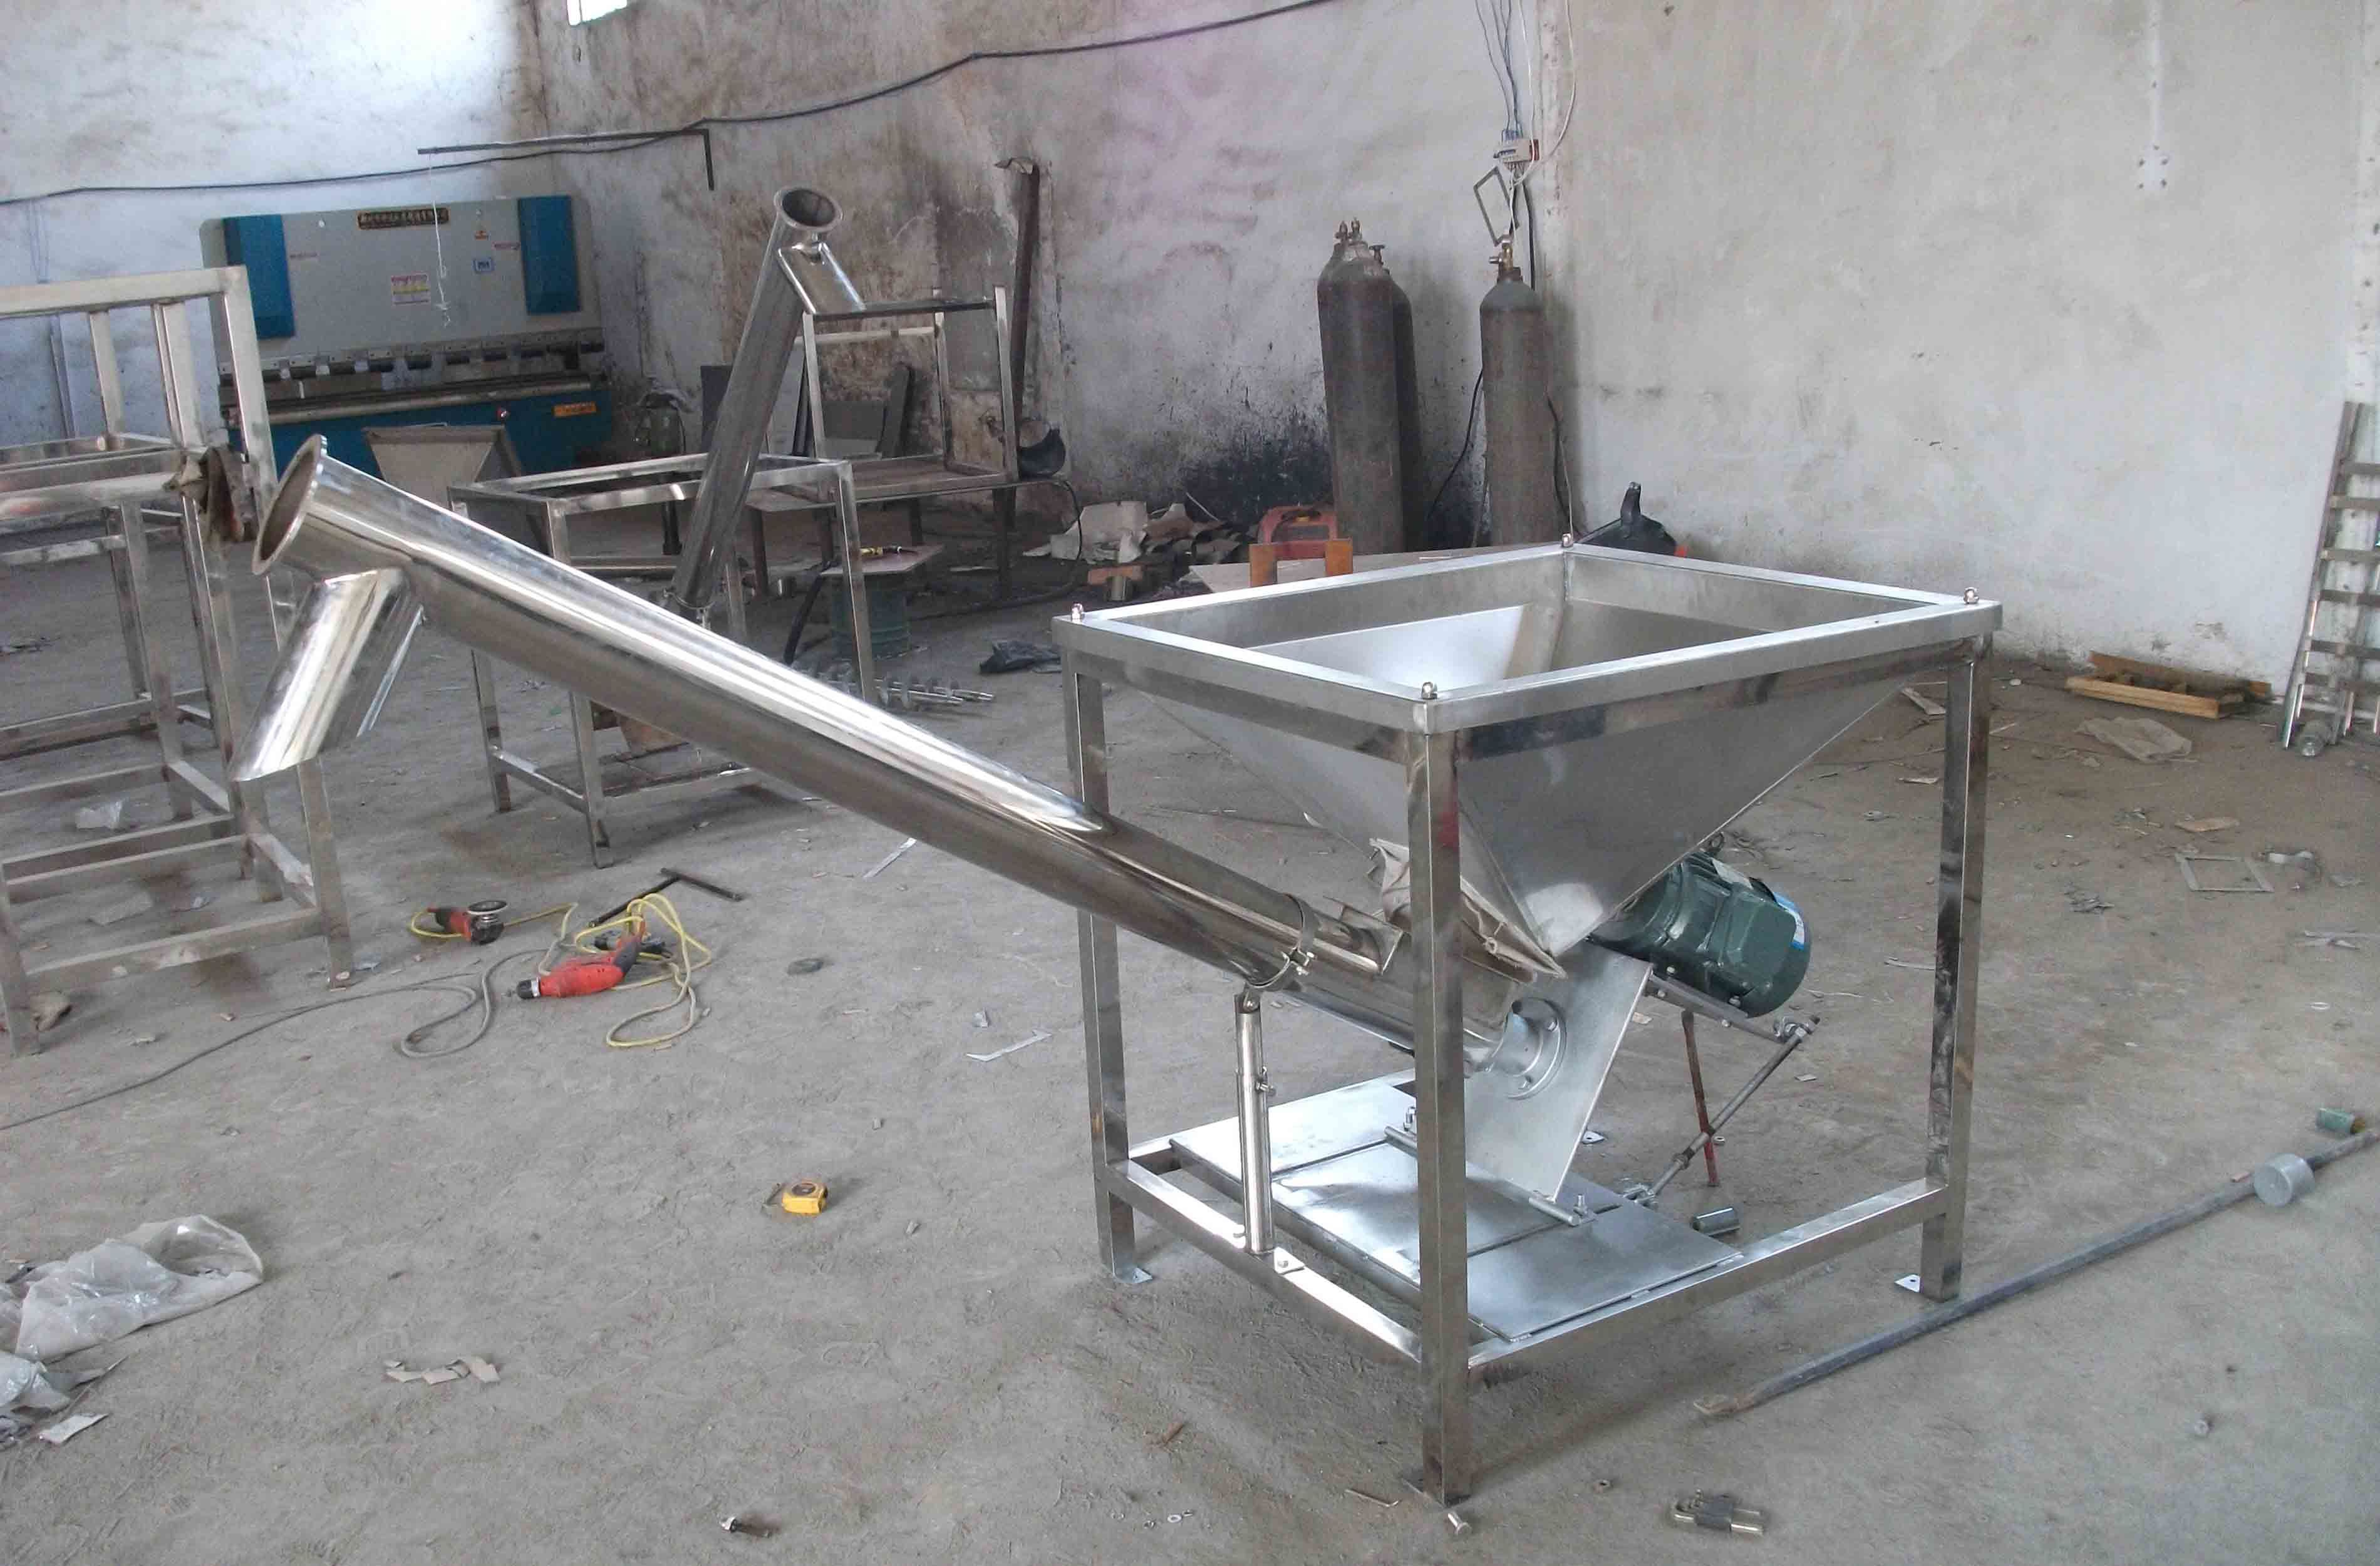 zealand successfully automatic filling auger client for a machine powder new delivered feeder manual semi